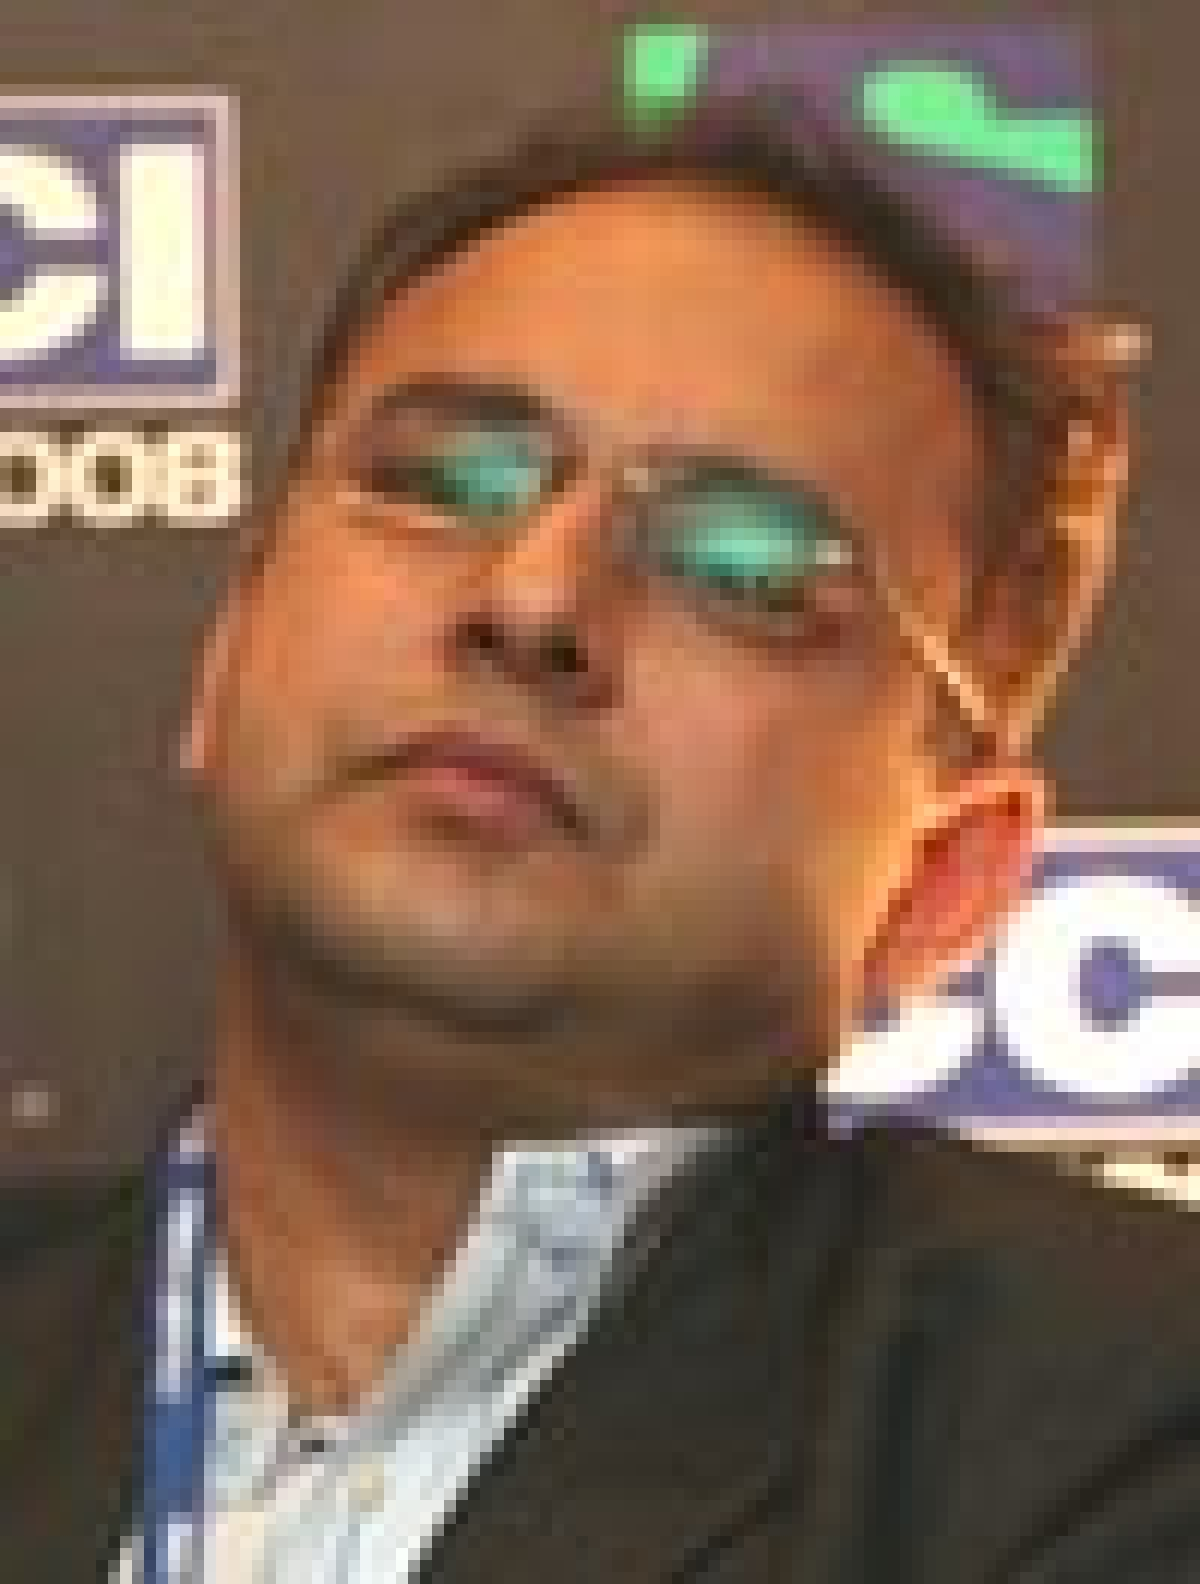 FICCI Frames 2008: User generated content is the future of online media